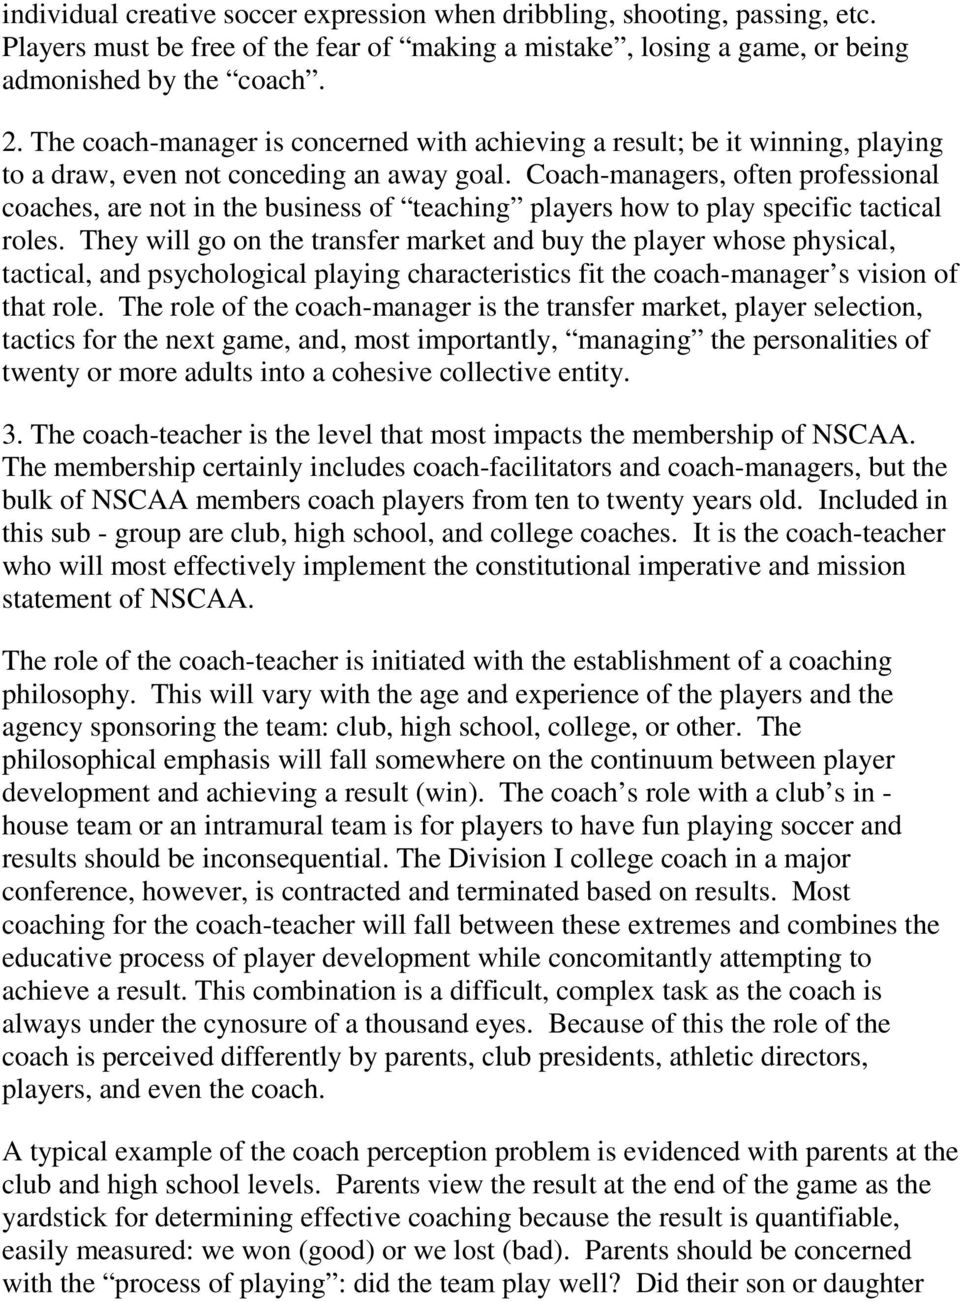 Coach-managers, often professional coaches, are not in the business of teaching players how to play specific tactical roles.